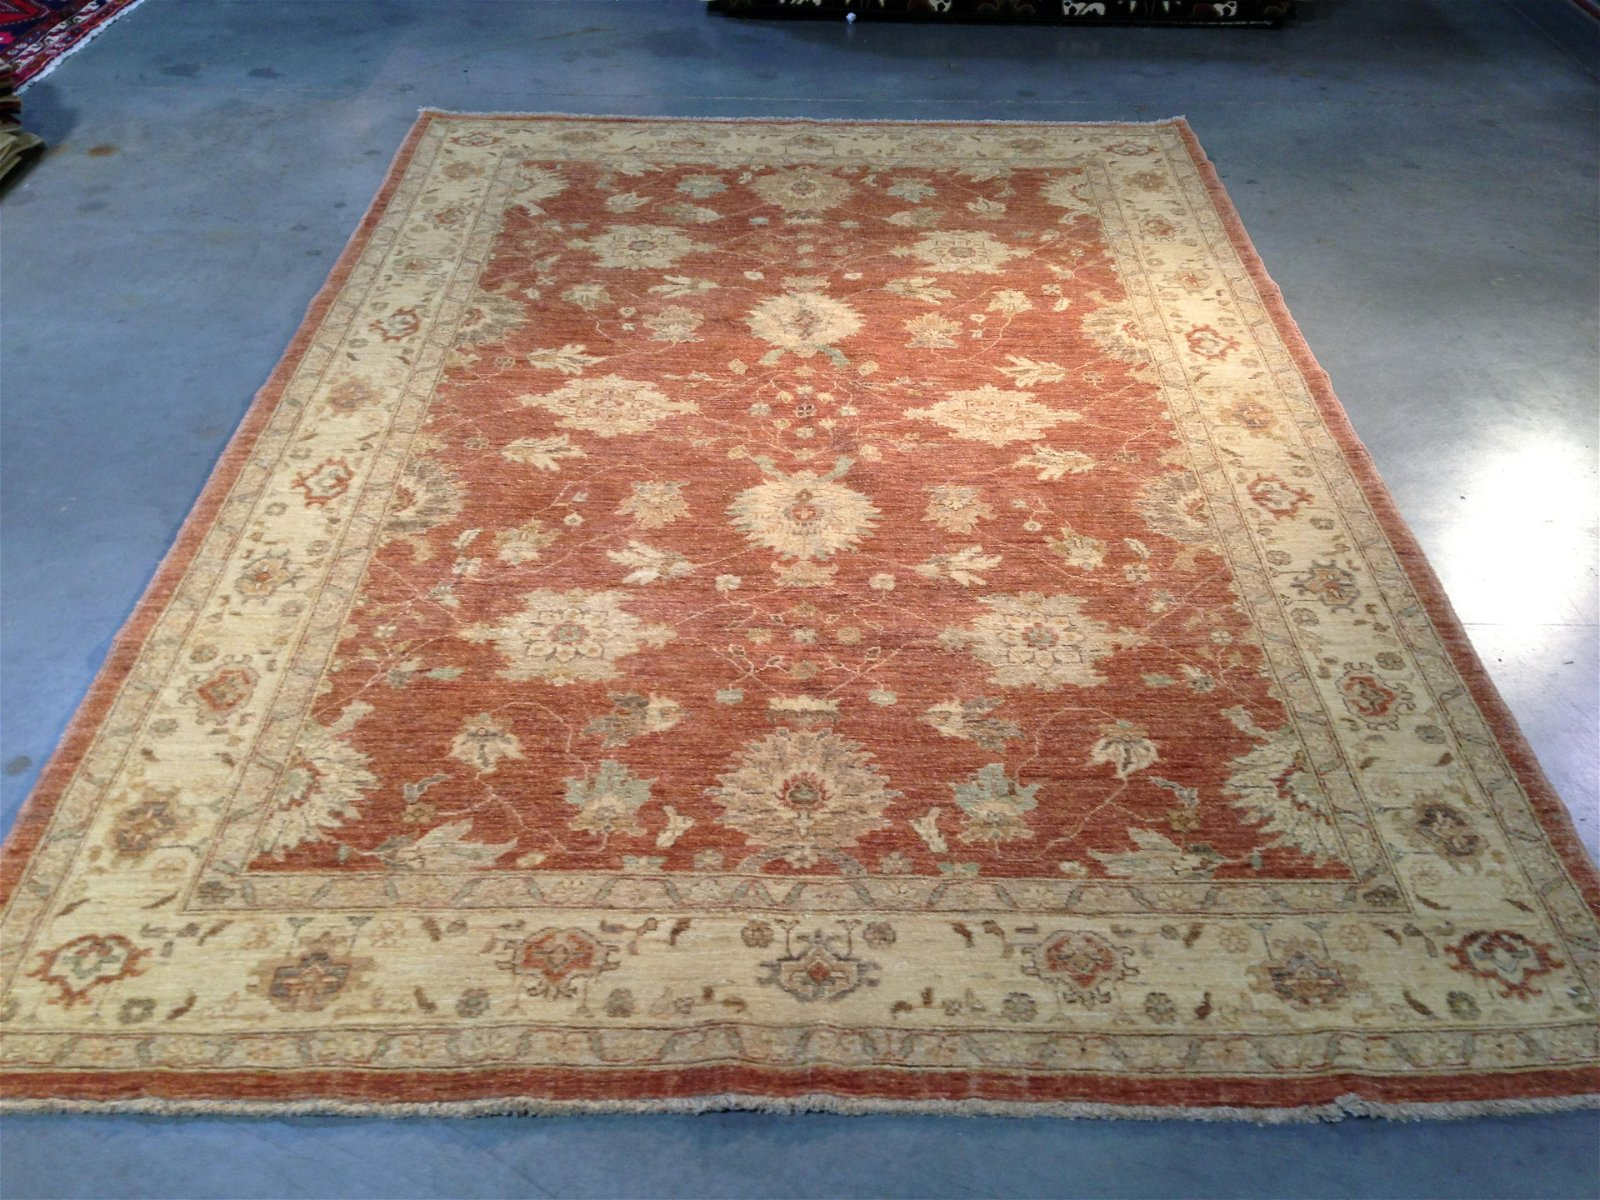 HAND KNOTTED VINTAGE REPRODUCTION RUG 6x9